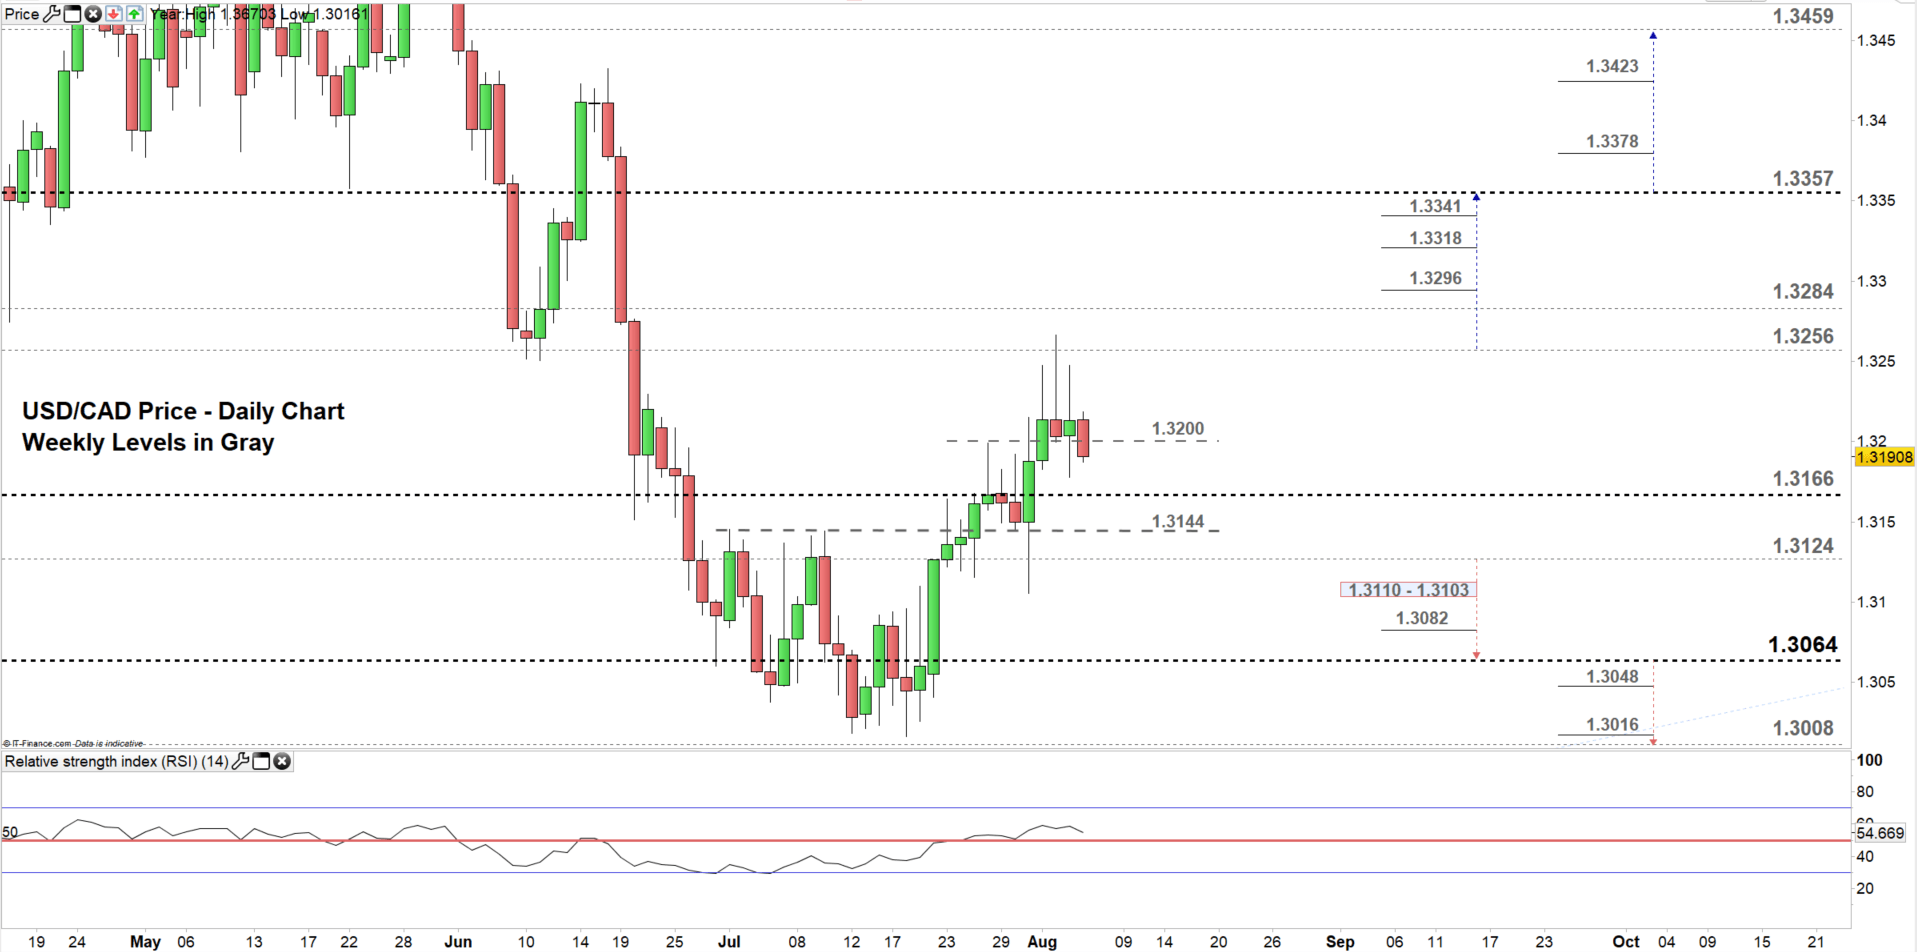 Canadian Dollar Price Usd Cad Hammered At Resistance Now